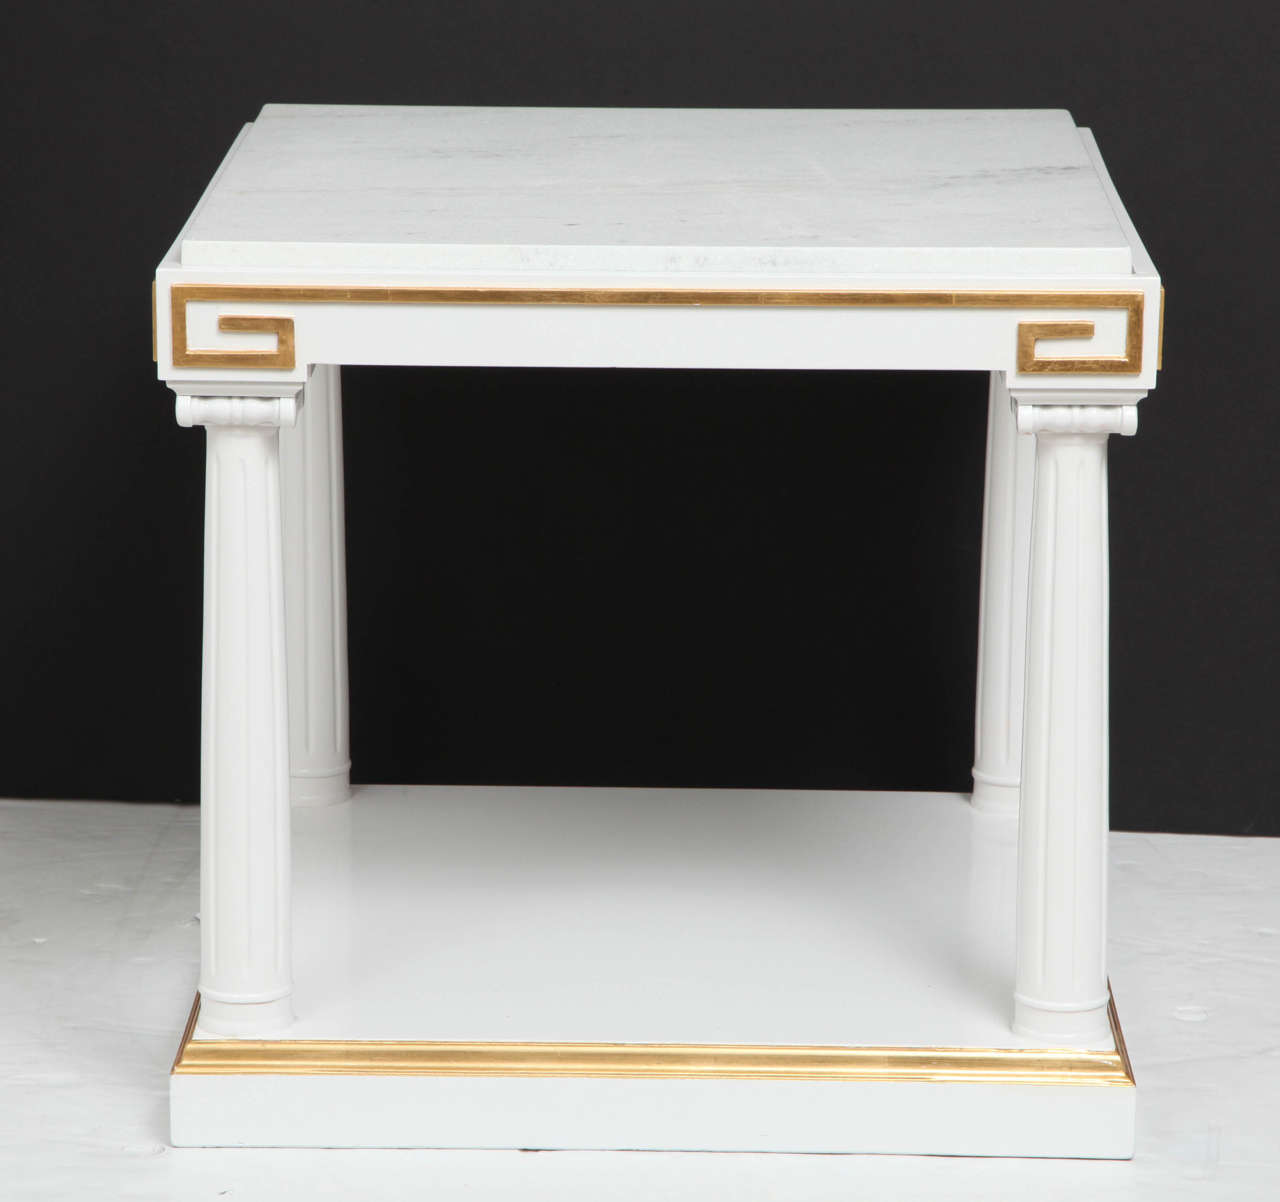 Fantastic pair of neoclassical side tables with fluted column supports and capitals in white lacquer. Tables also feature gold leaf Greek key details and white marble quartz inset tops.